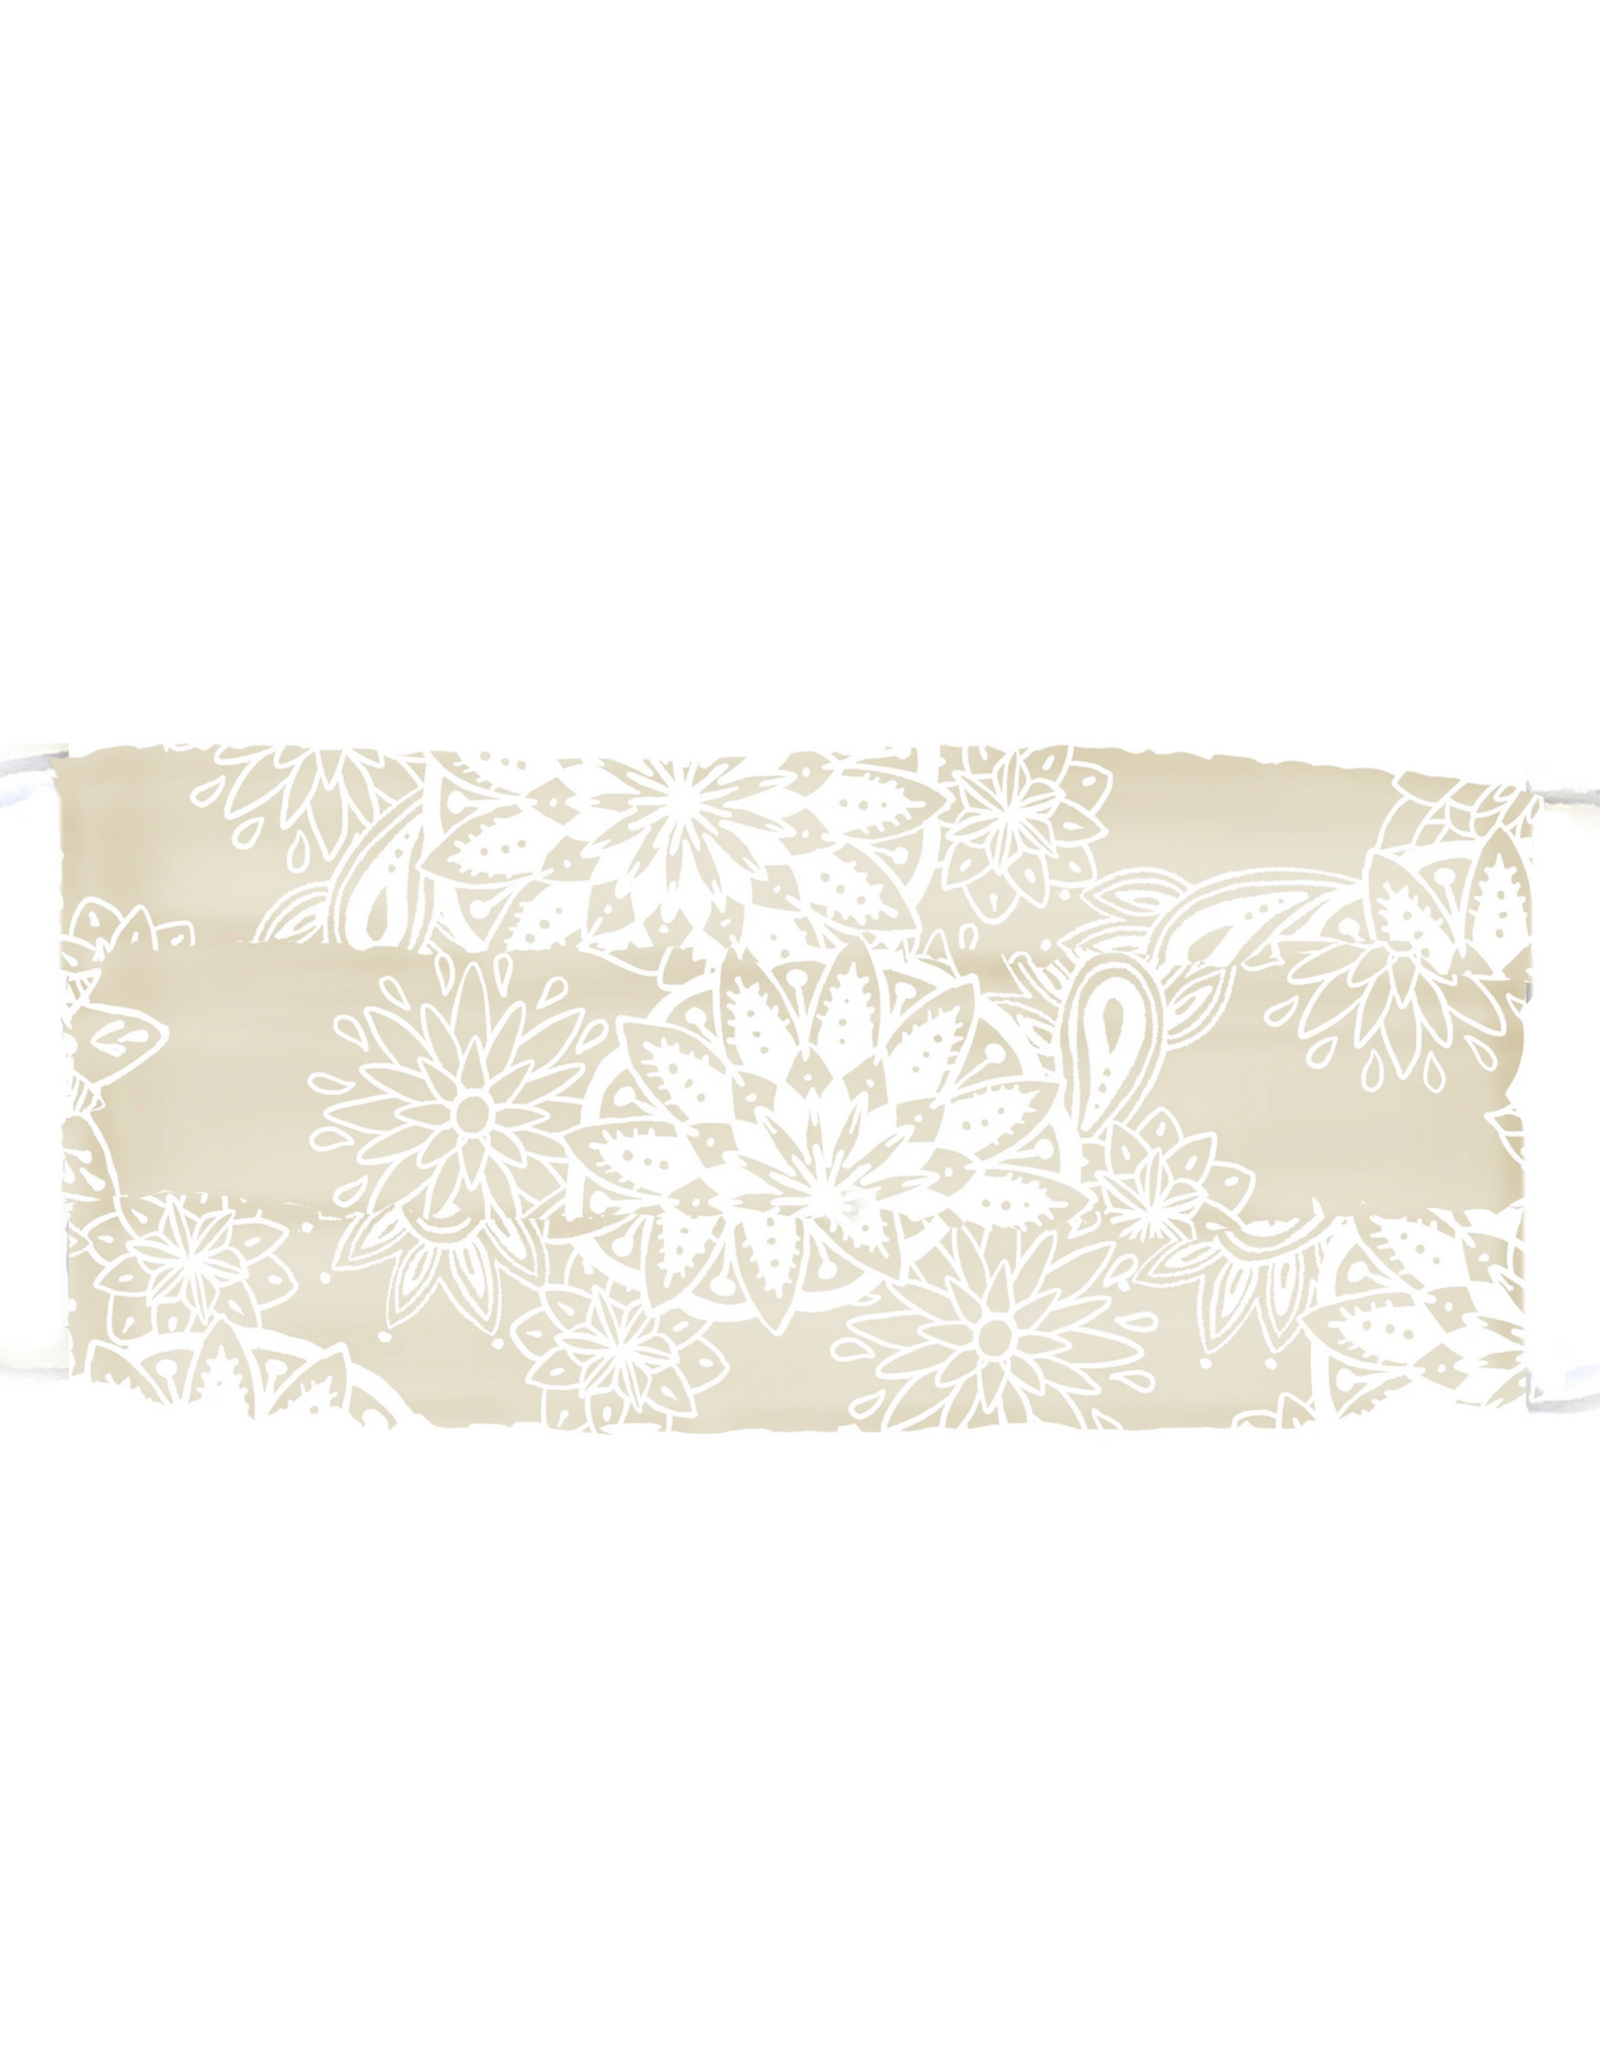 Lotus and Luna Lotus and Luna - Pleated Face Mask - Taupe and Cream